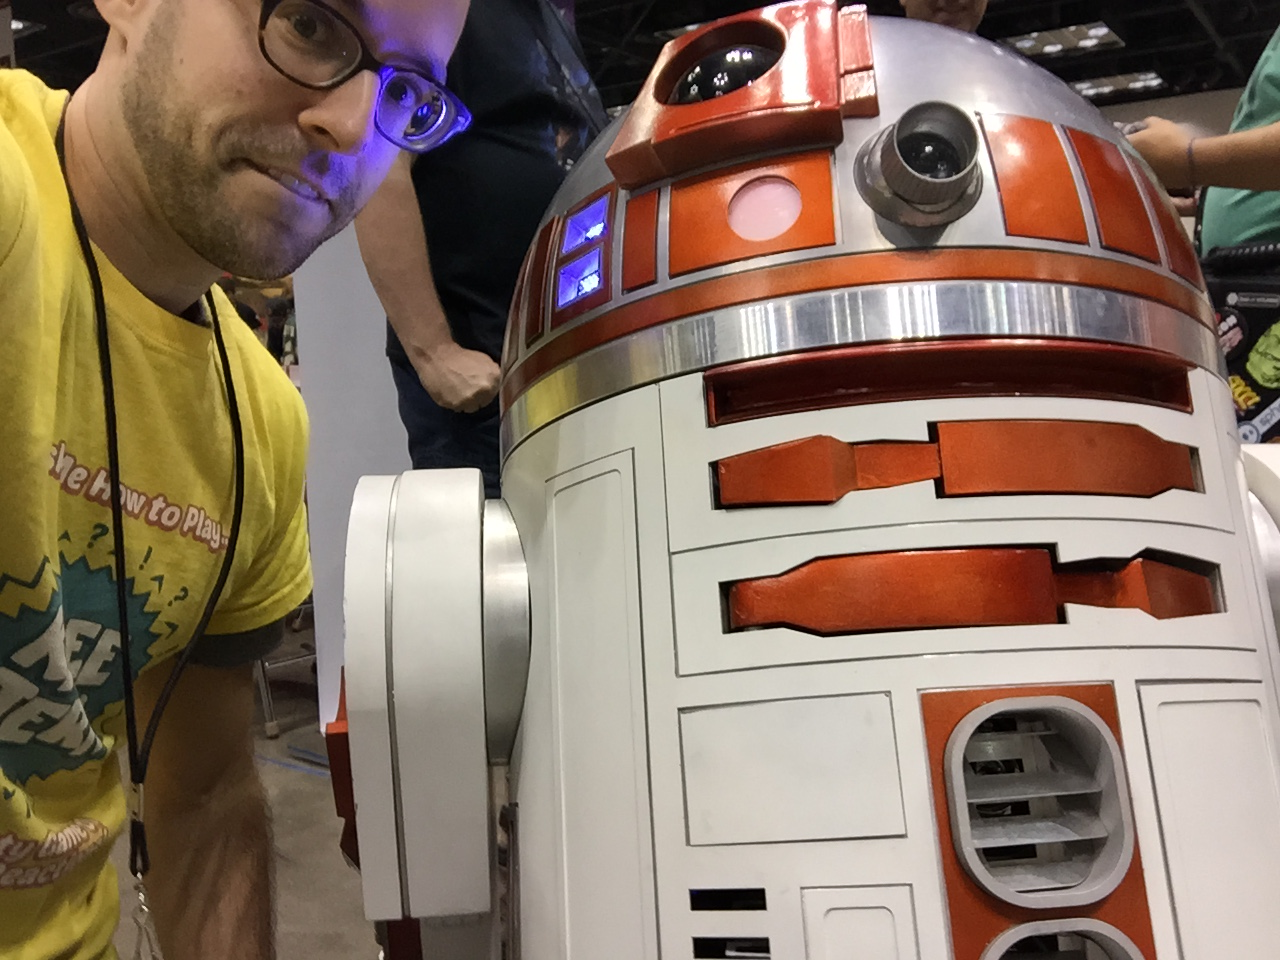 A fully functioning R2 unit!